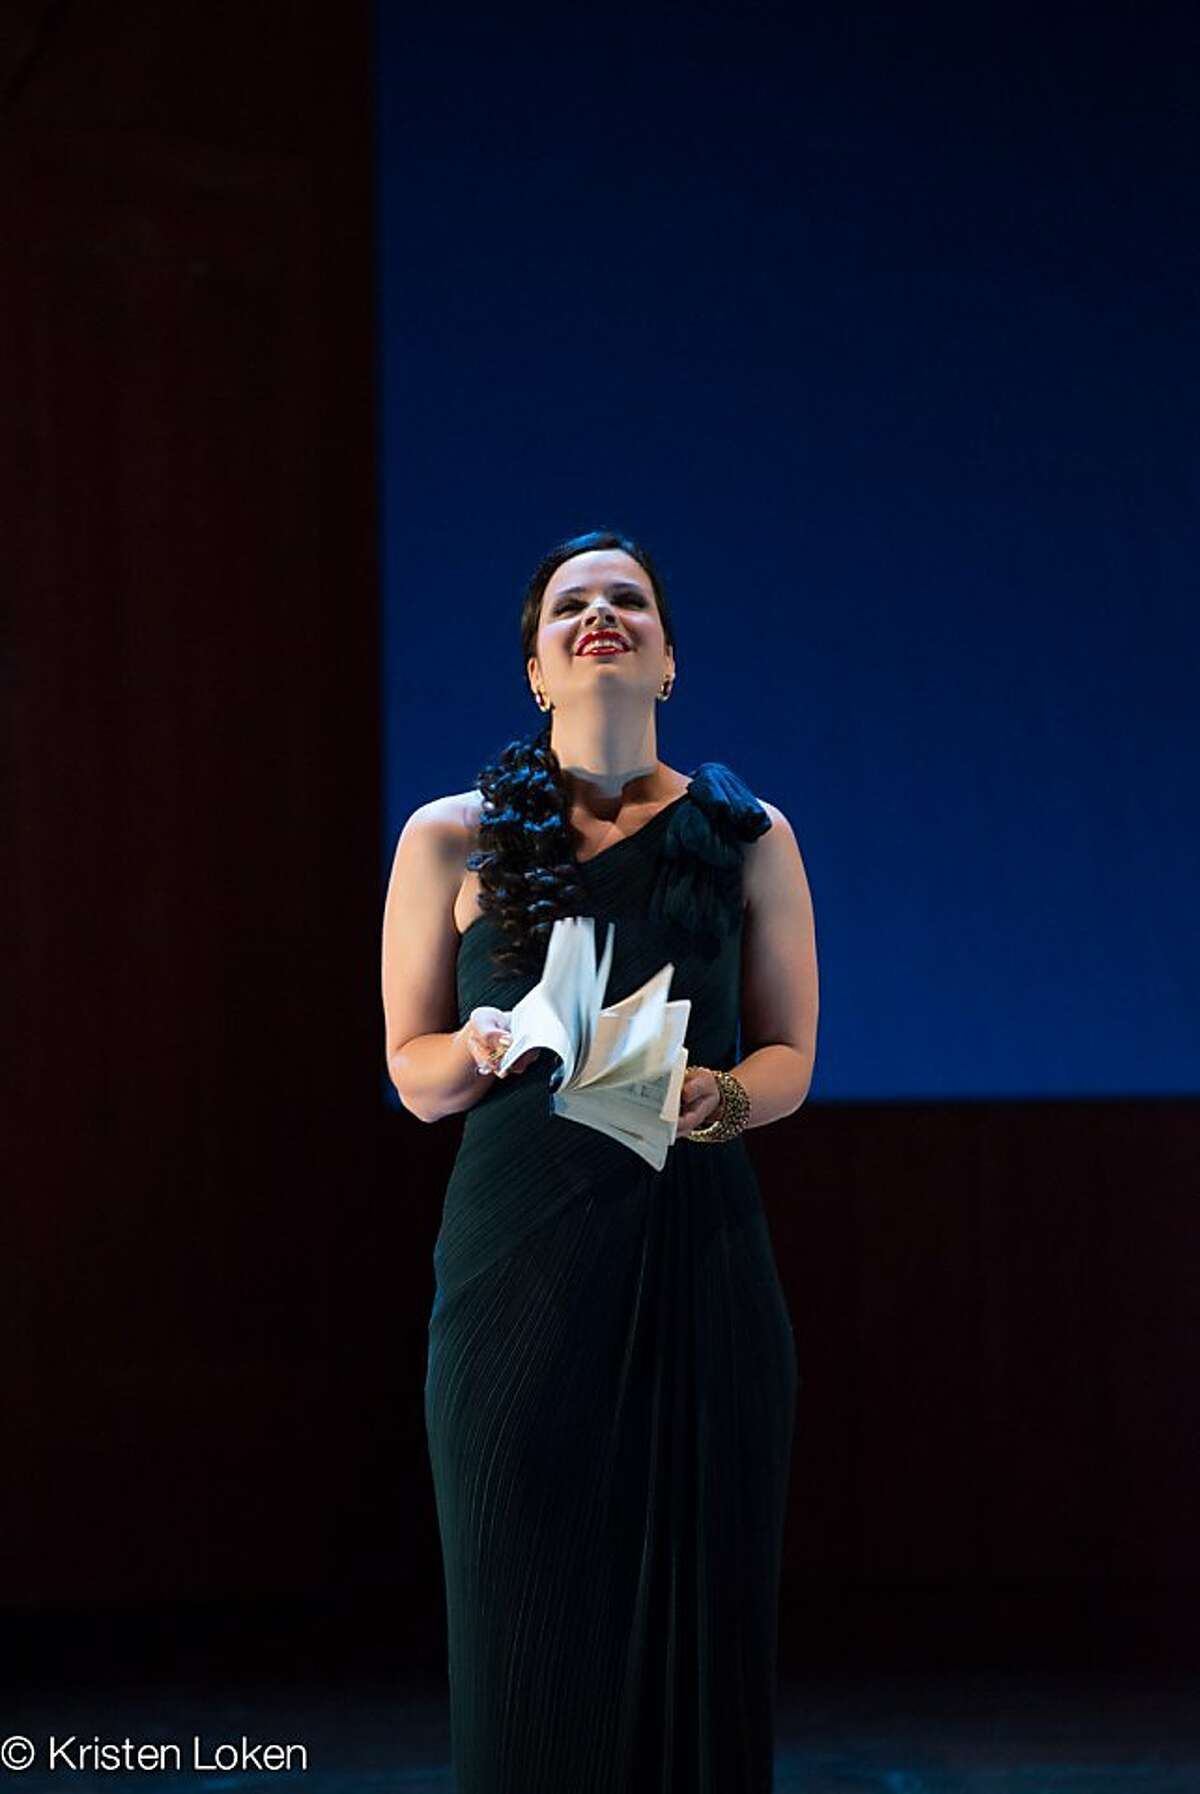 Mezzo-soprano Zanda Svede made the evening's most unforgettable showing with an aria from Gounod's